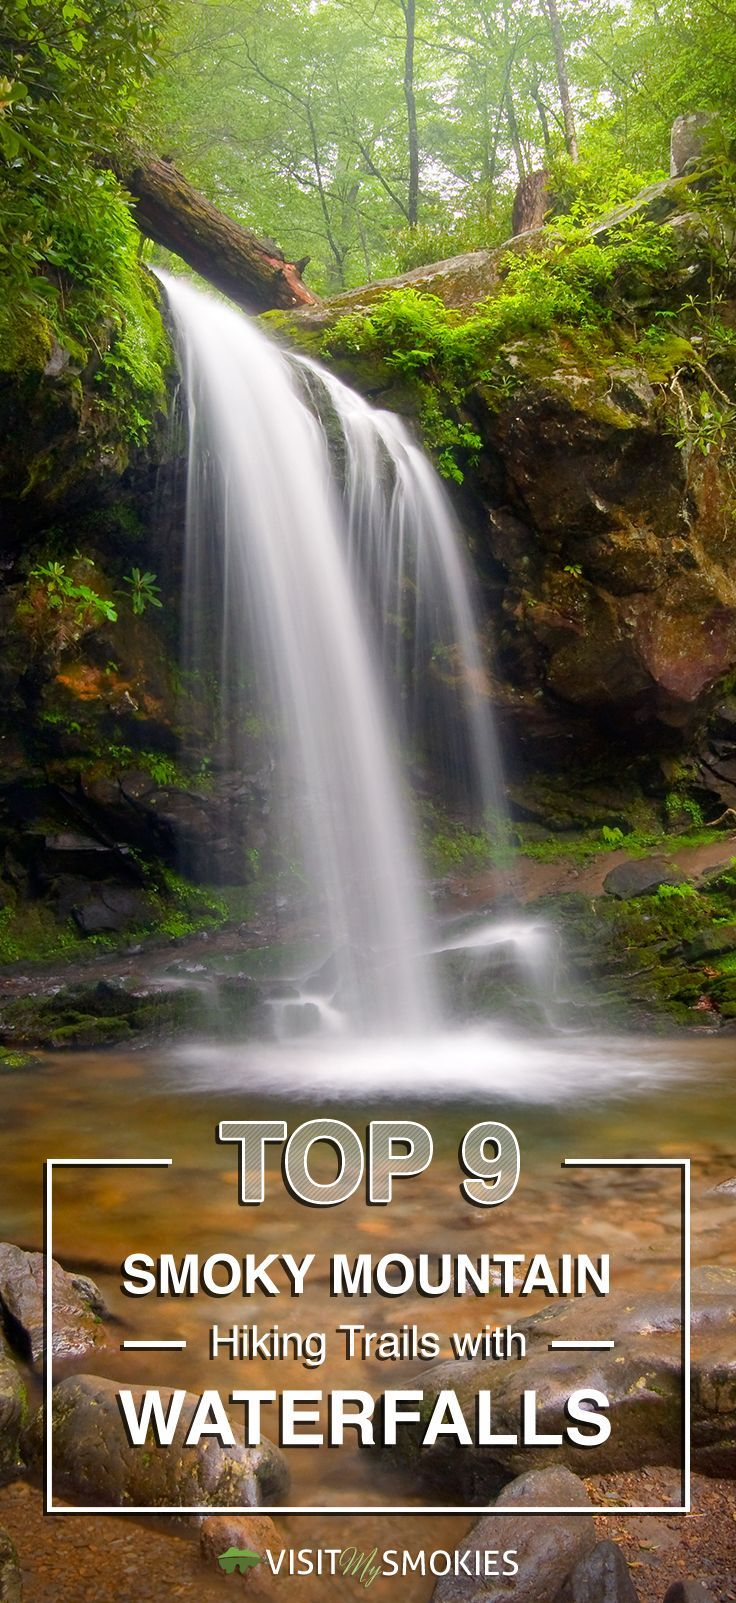 Prime 9 Smoky Mountain Climbing Trails with Waterfalls....  Look into more at the photo link